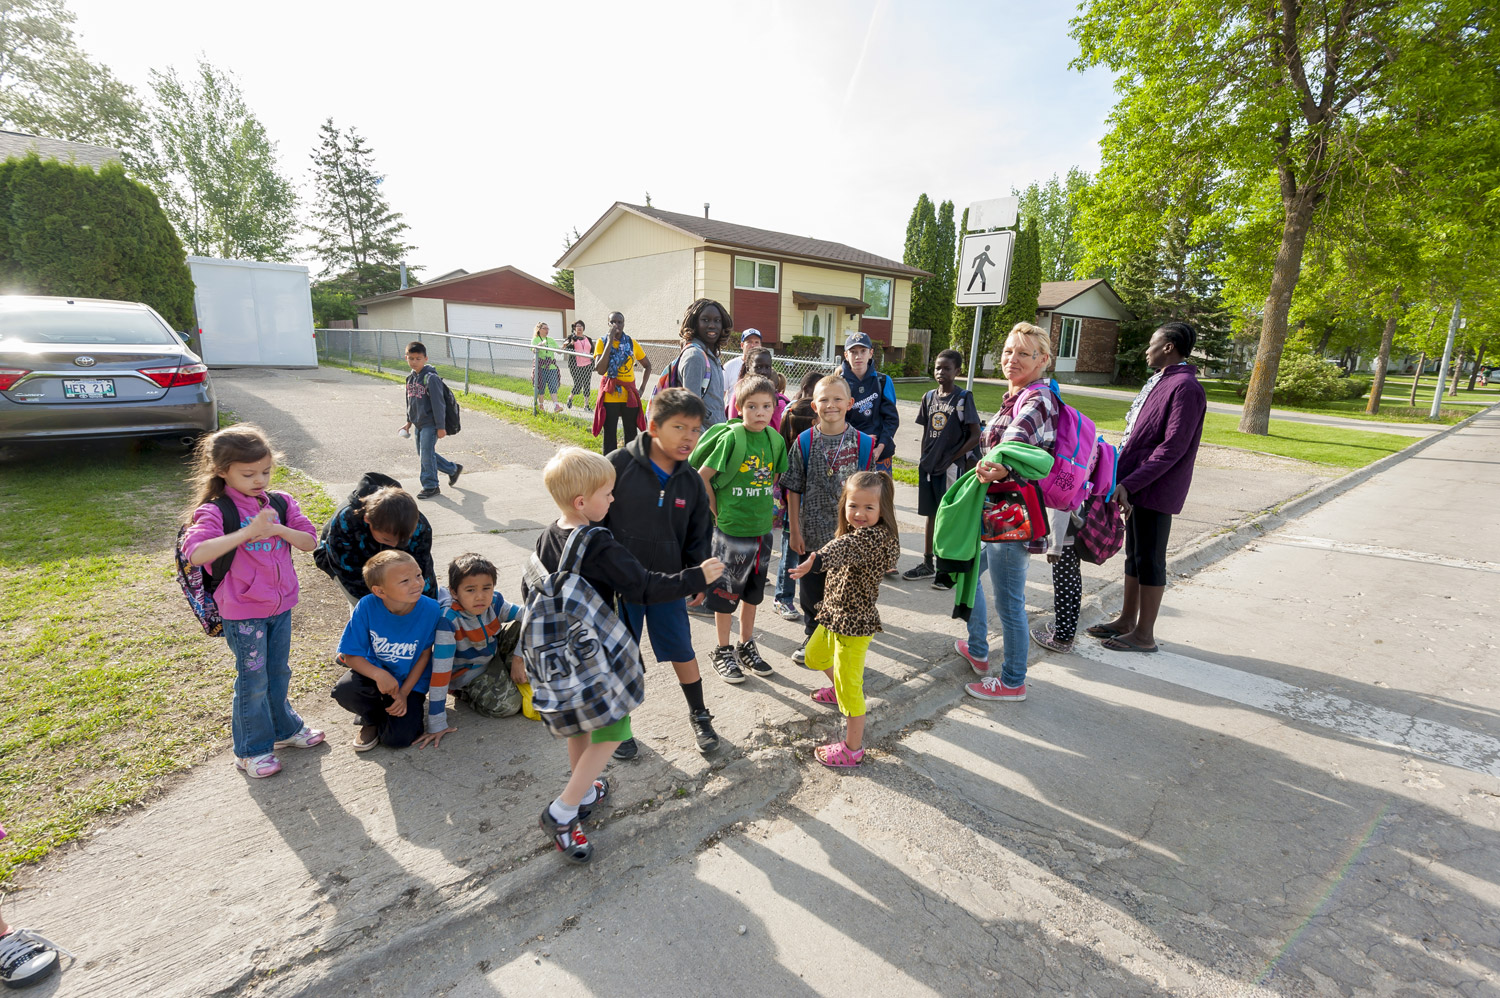 Leah gets some help making sure the walking school bus crosses a road safely. DOUG LITTLE PHOTOGRAPHY